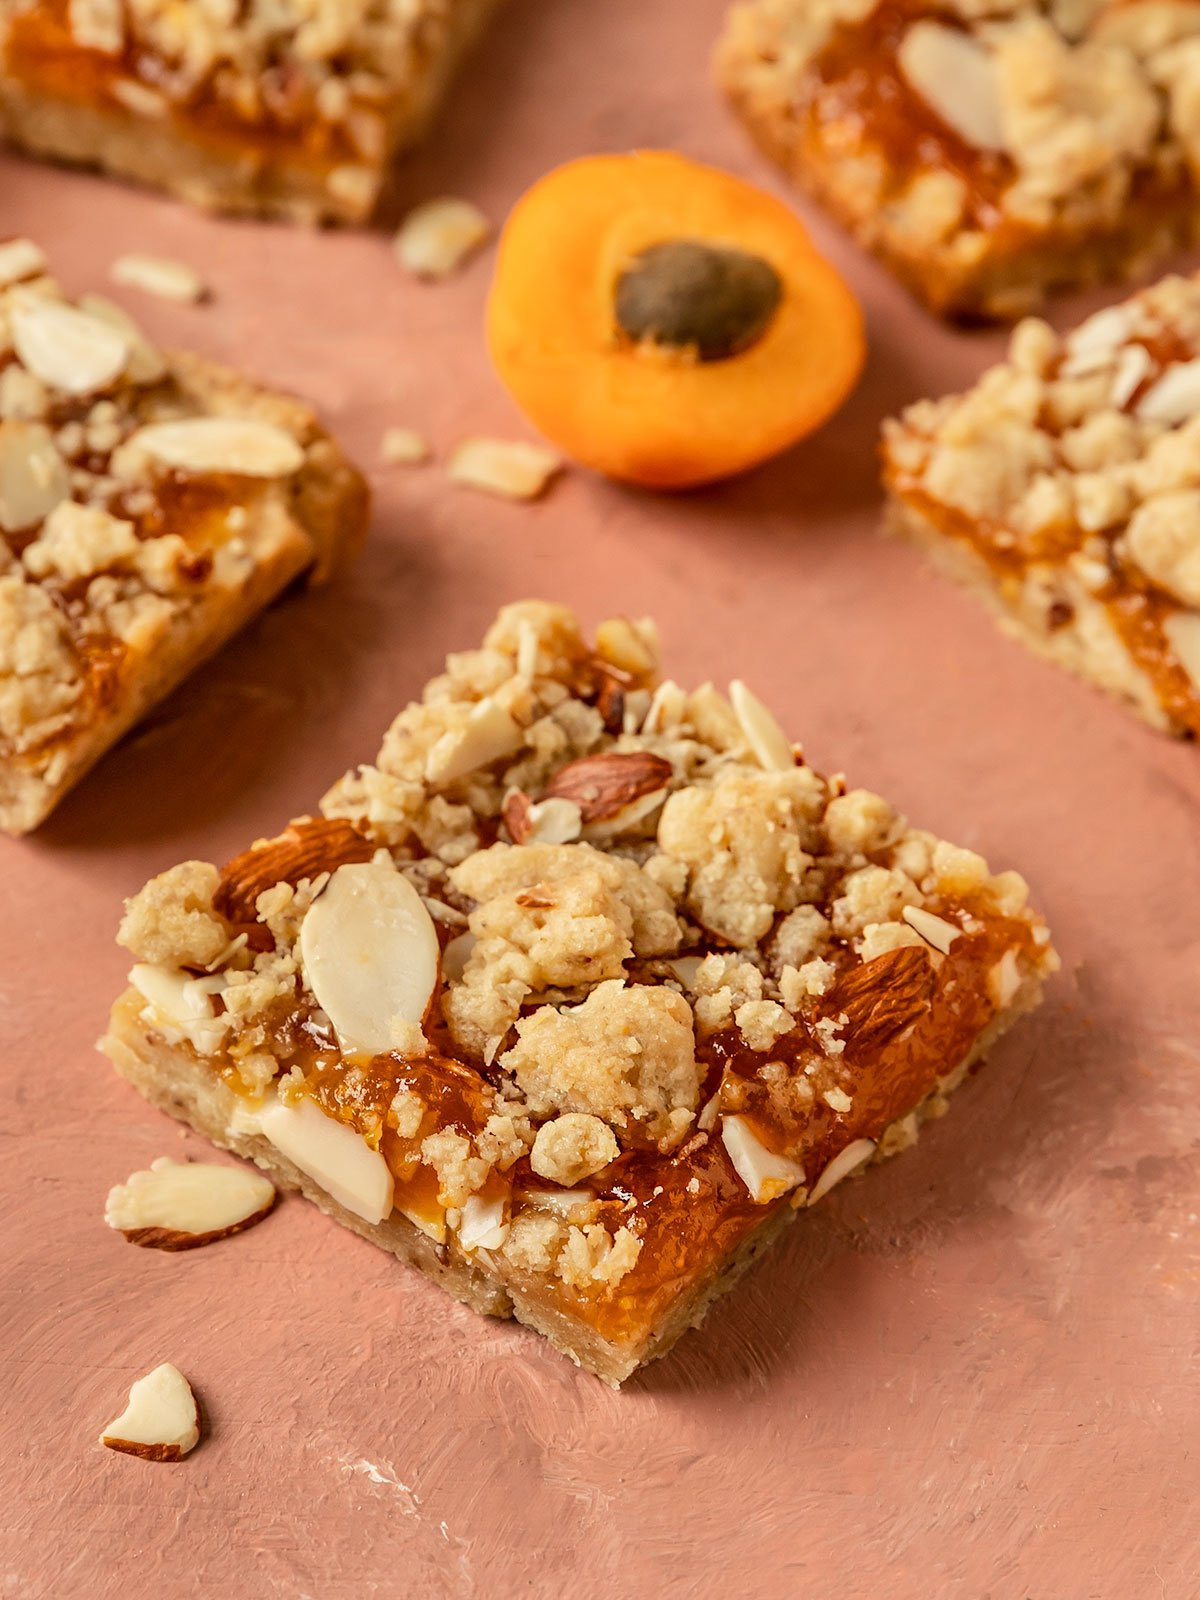 close up shot of apricot bar with a thick apricot jam layer and almond crumble topping